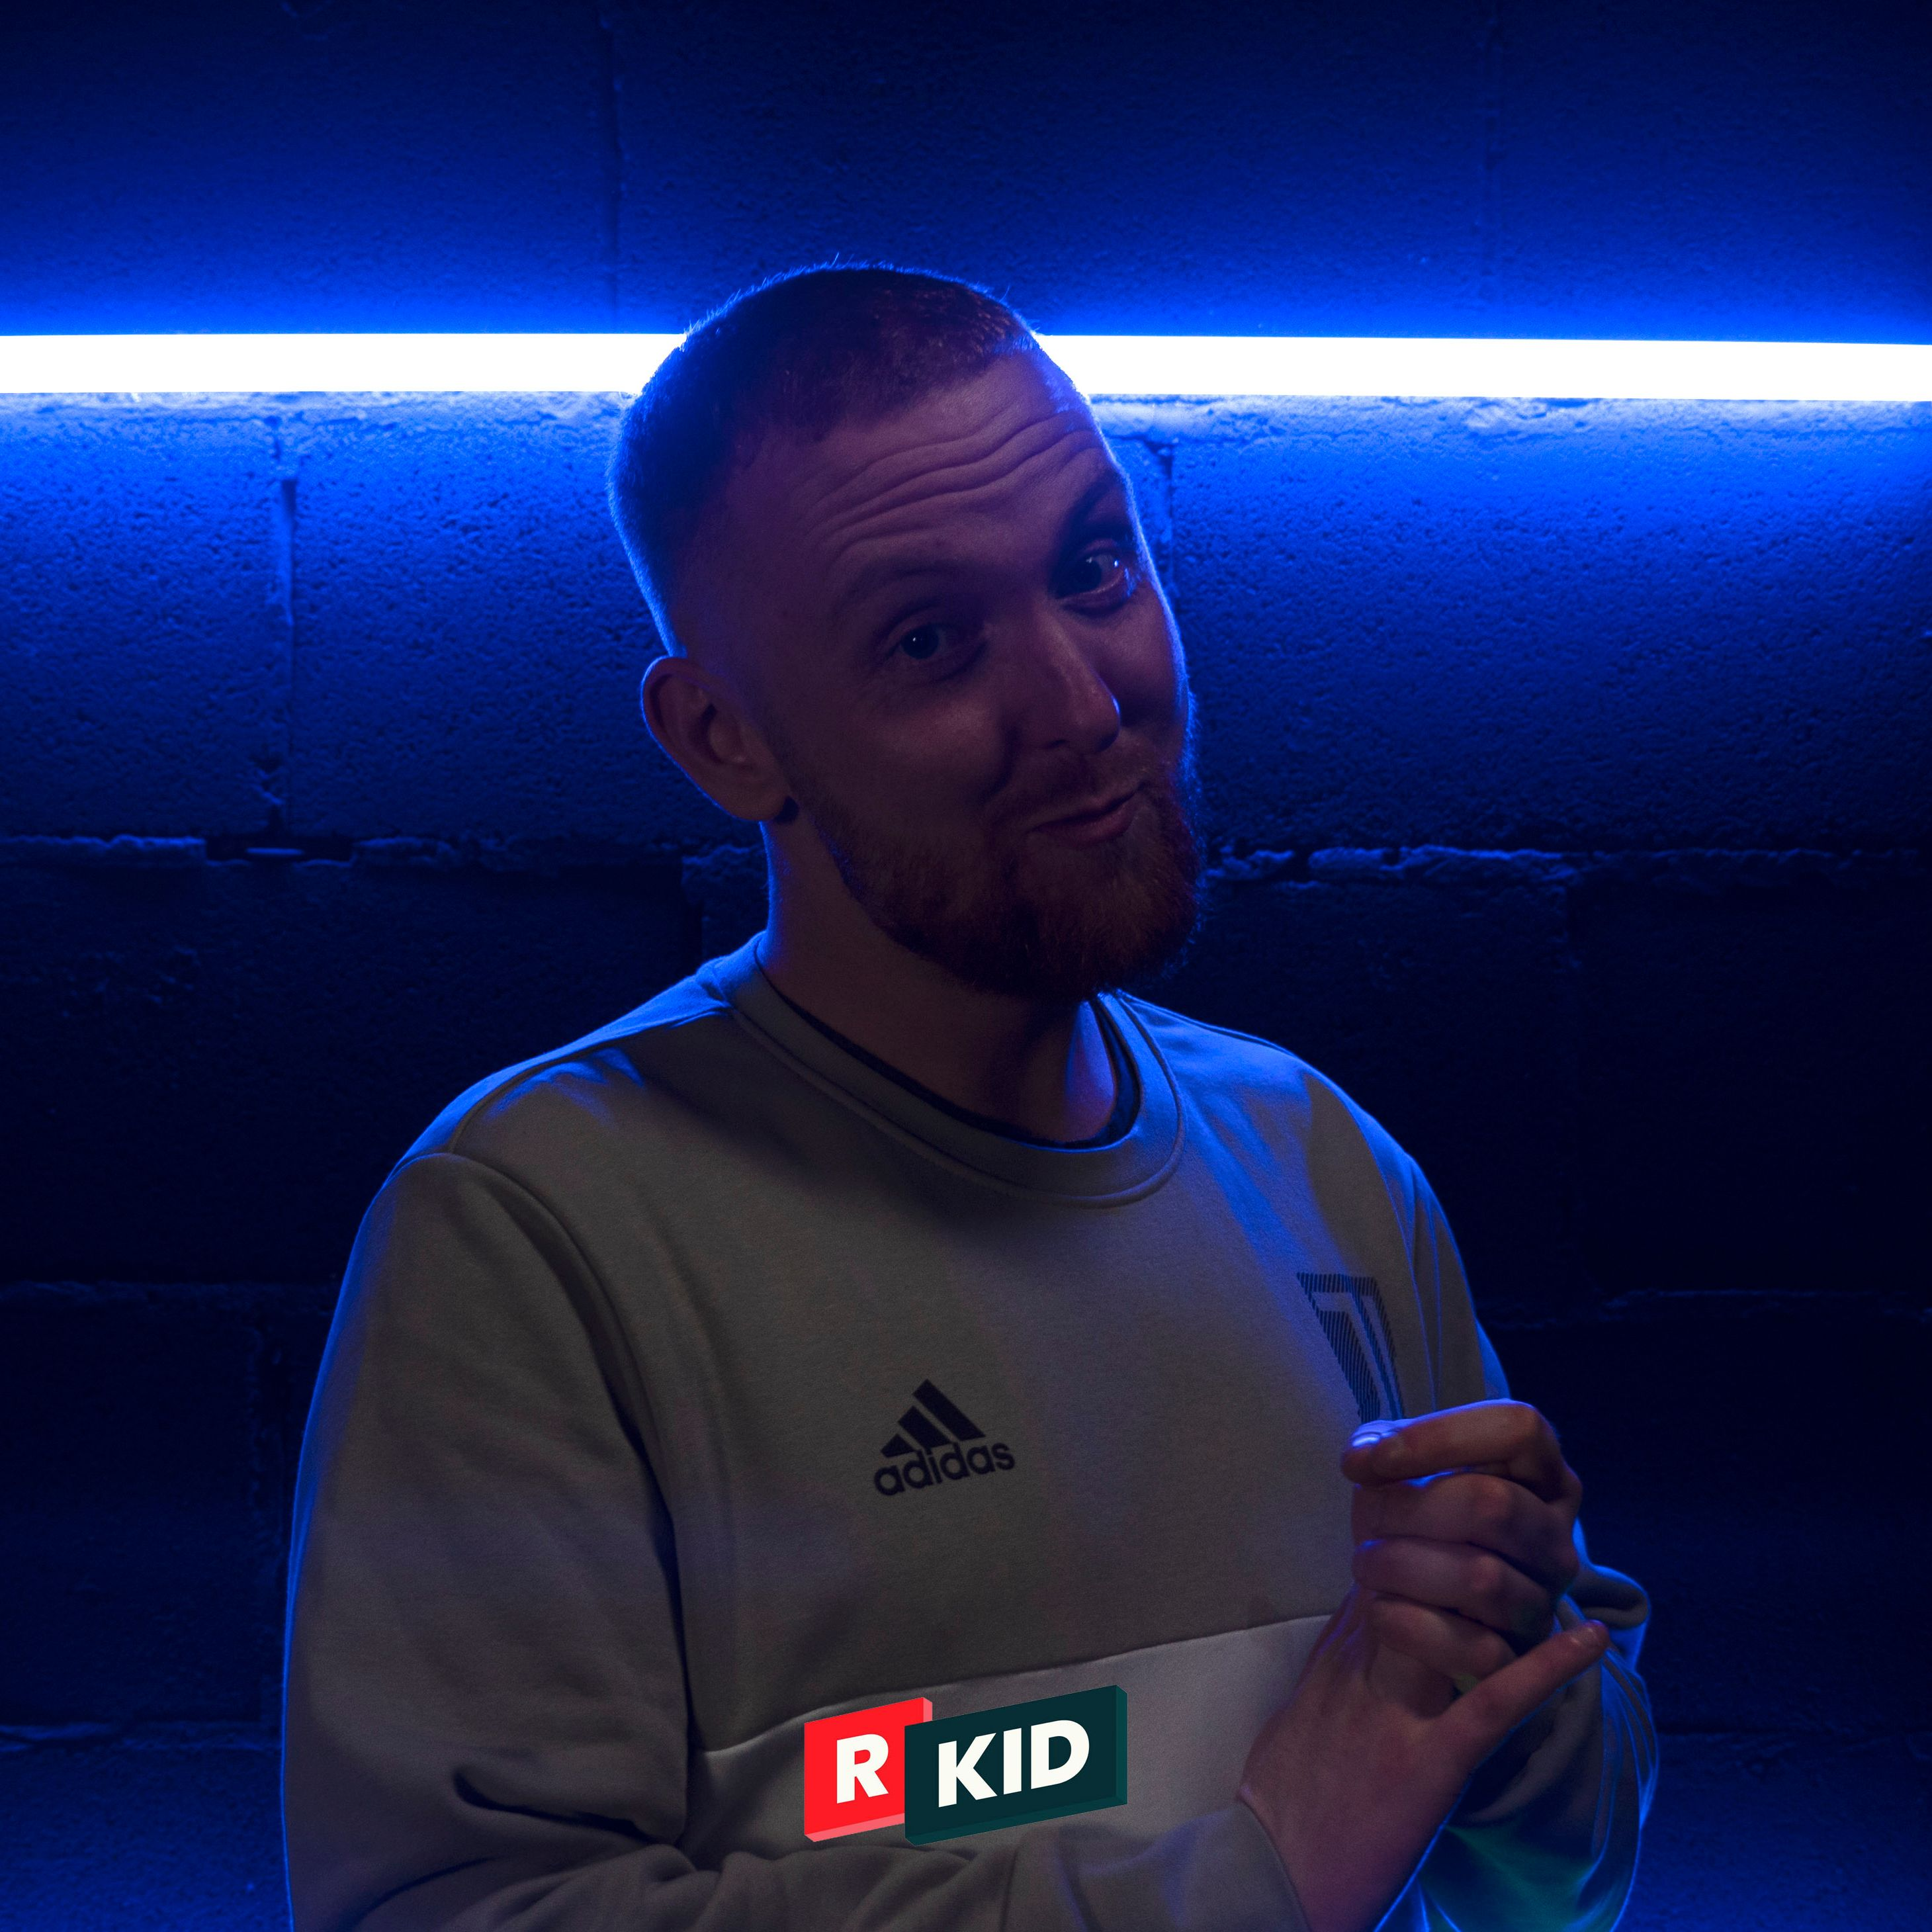 XP | Lord of the Mic's, Grime Music and What's Next | R'Kid Podcast